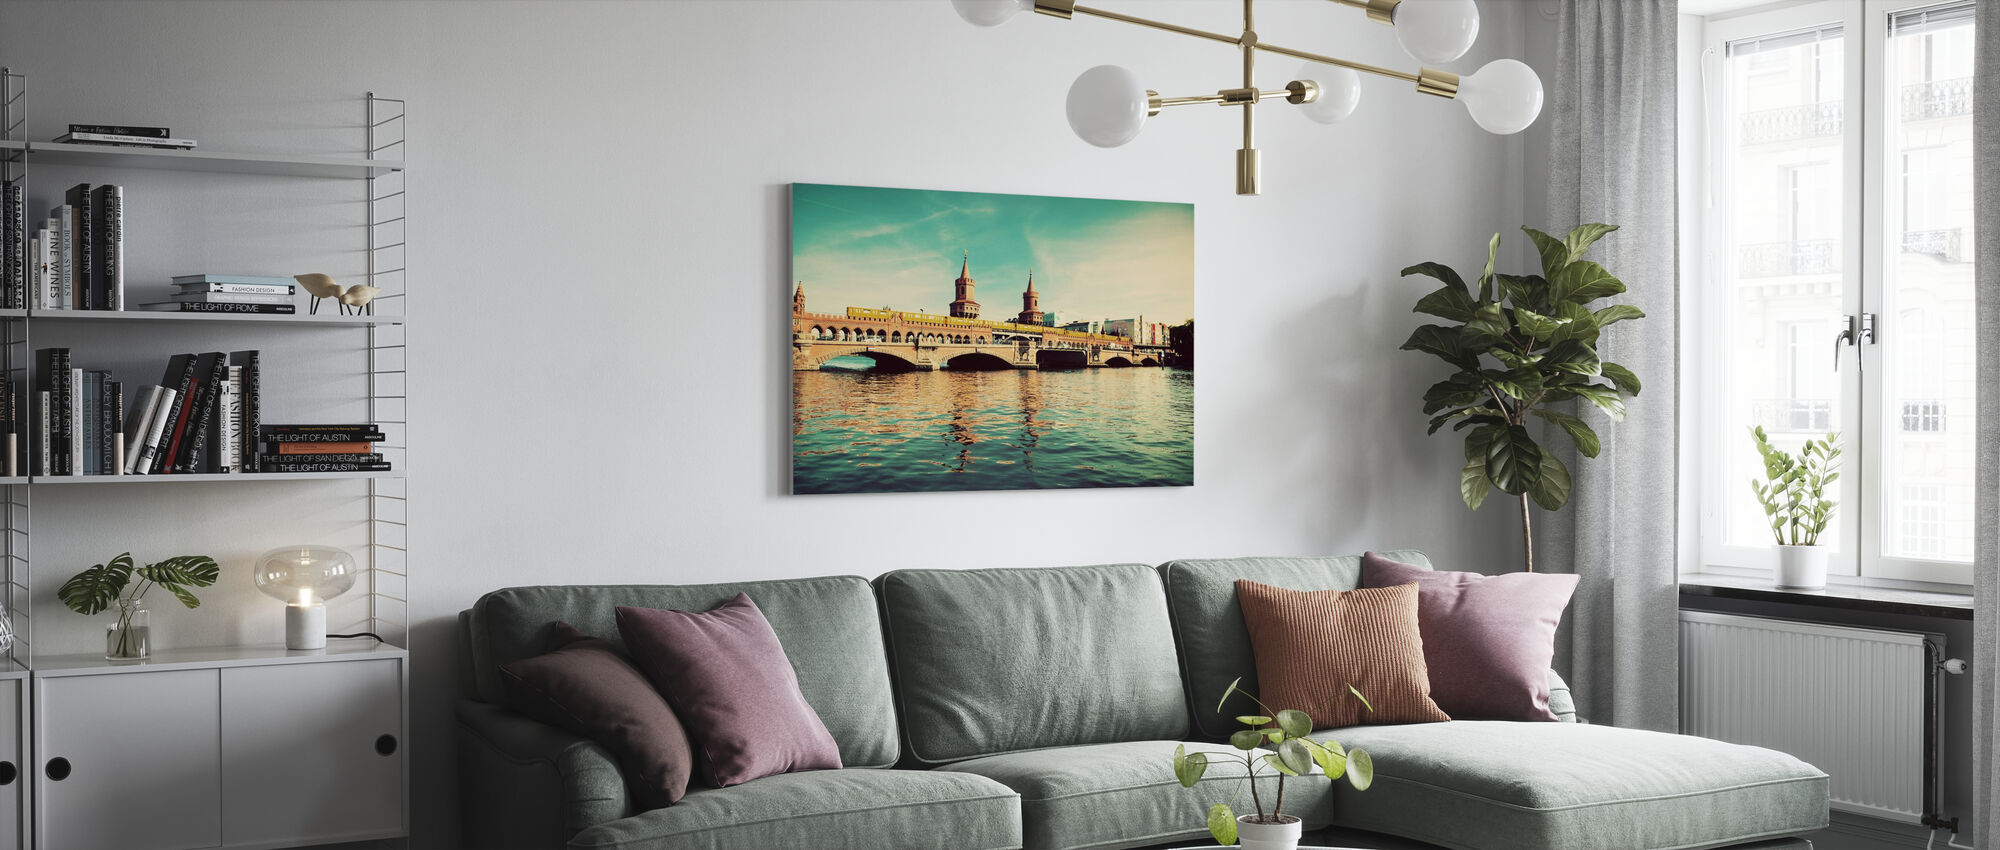 The Oberbaum Bridge and River Spree in Berlin - Canvas print - Living Room